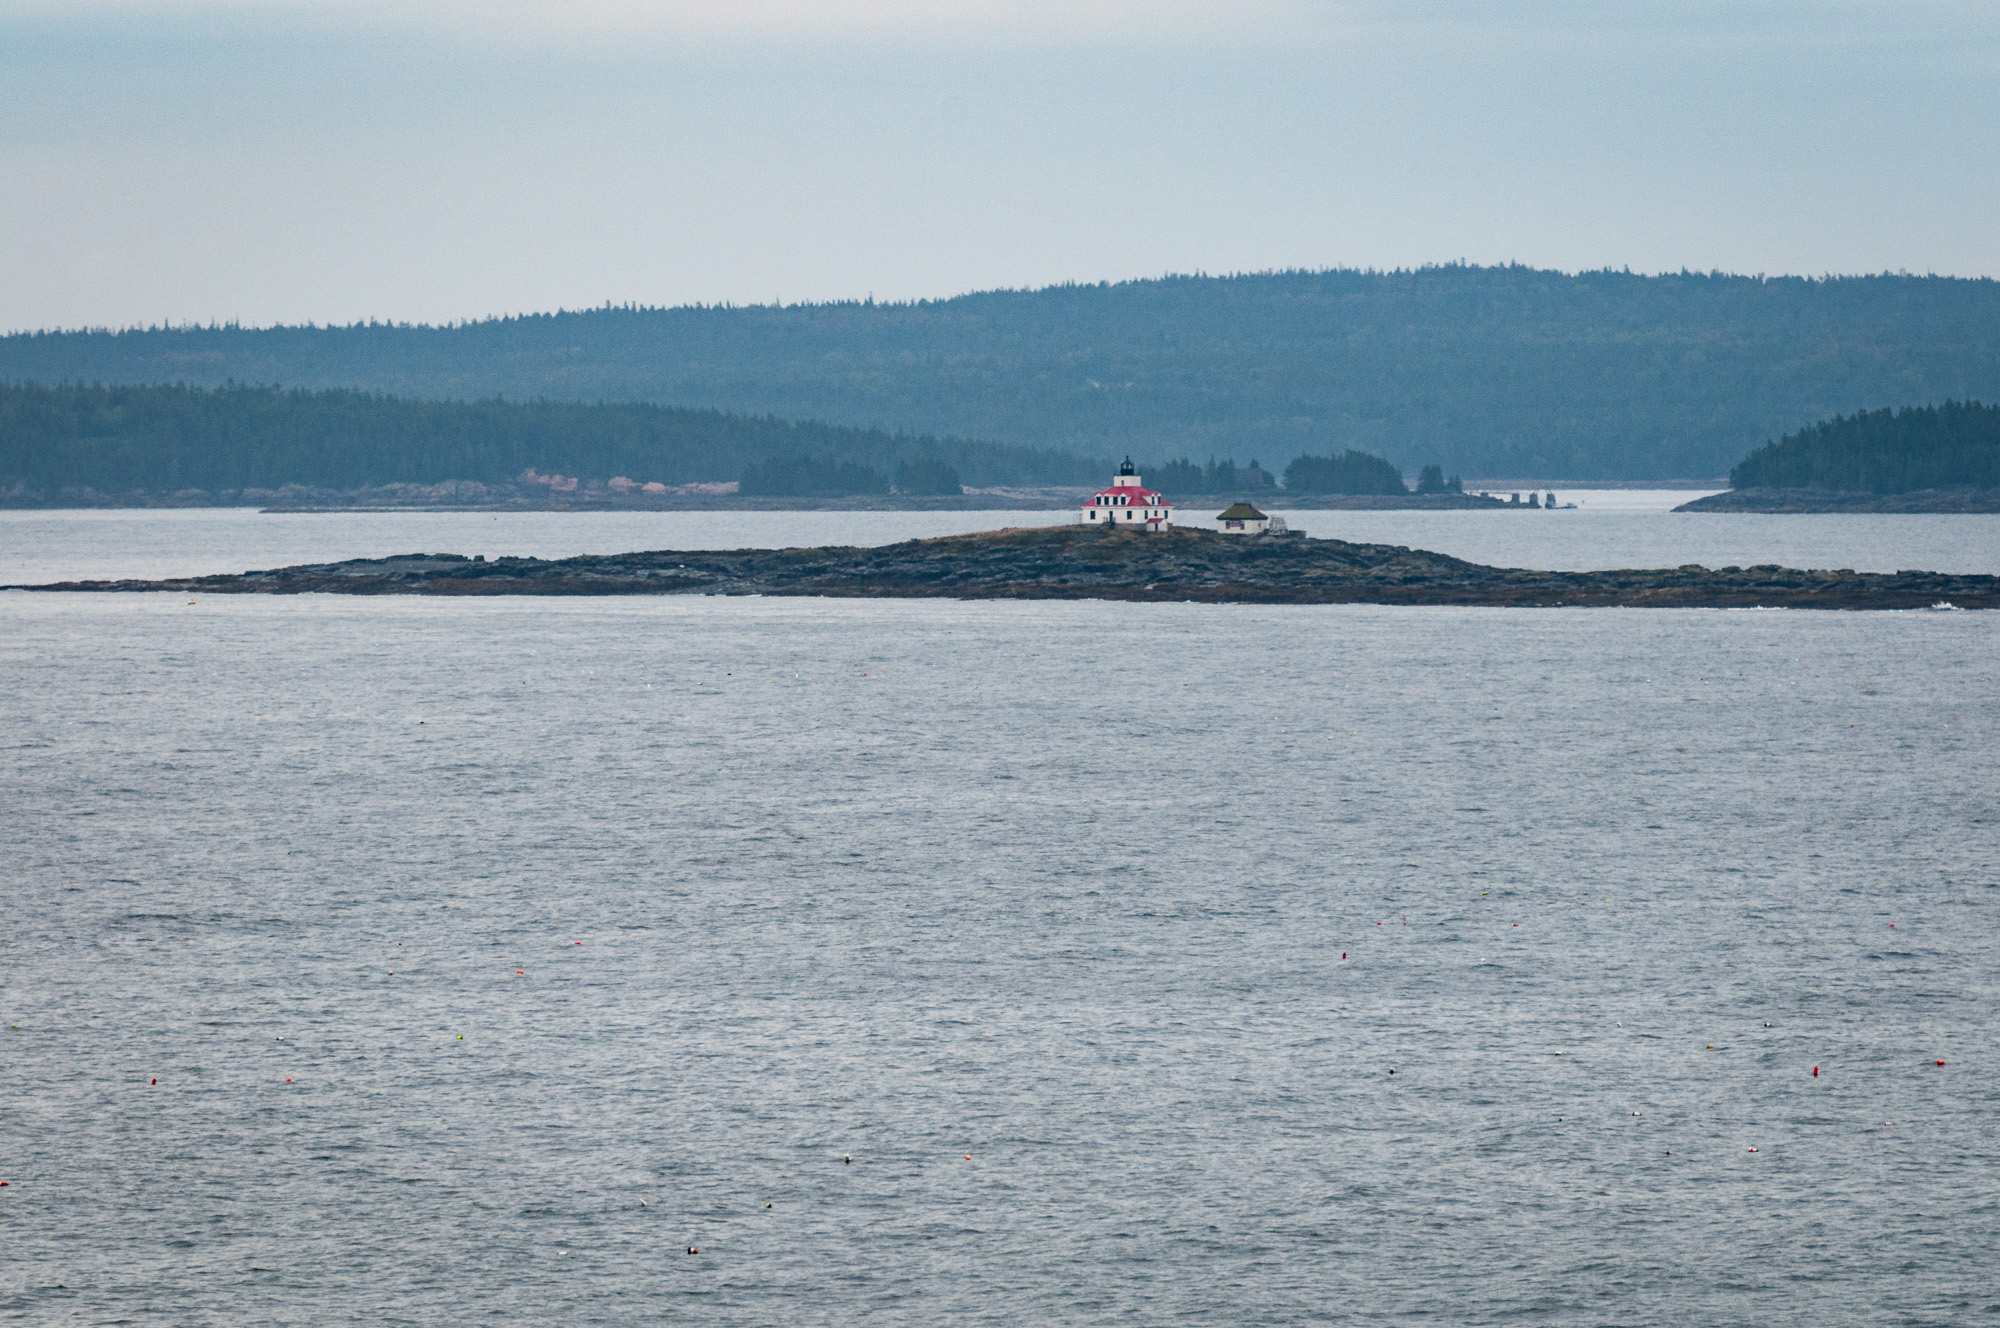 Wider view of Egg Rock Light from parking lot, processed to reduce mist. (210mm focal length)